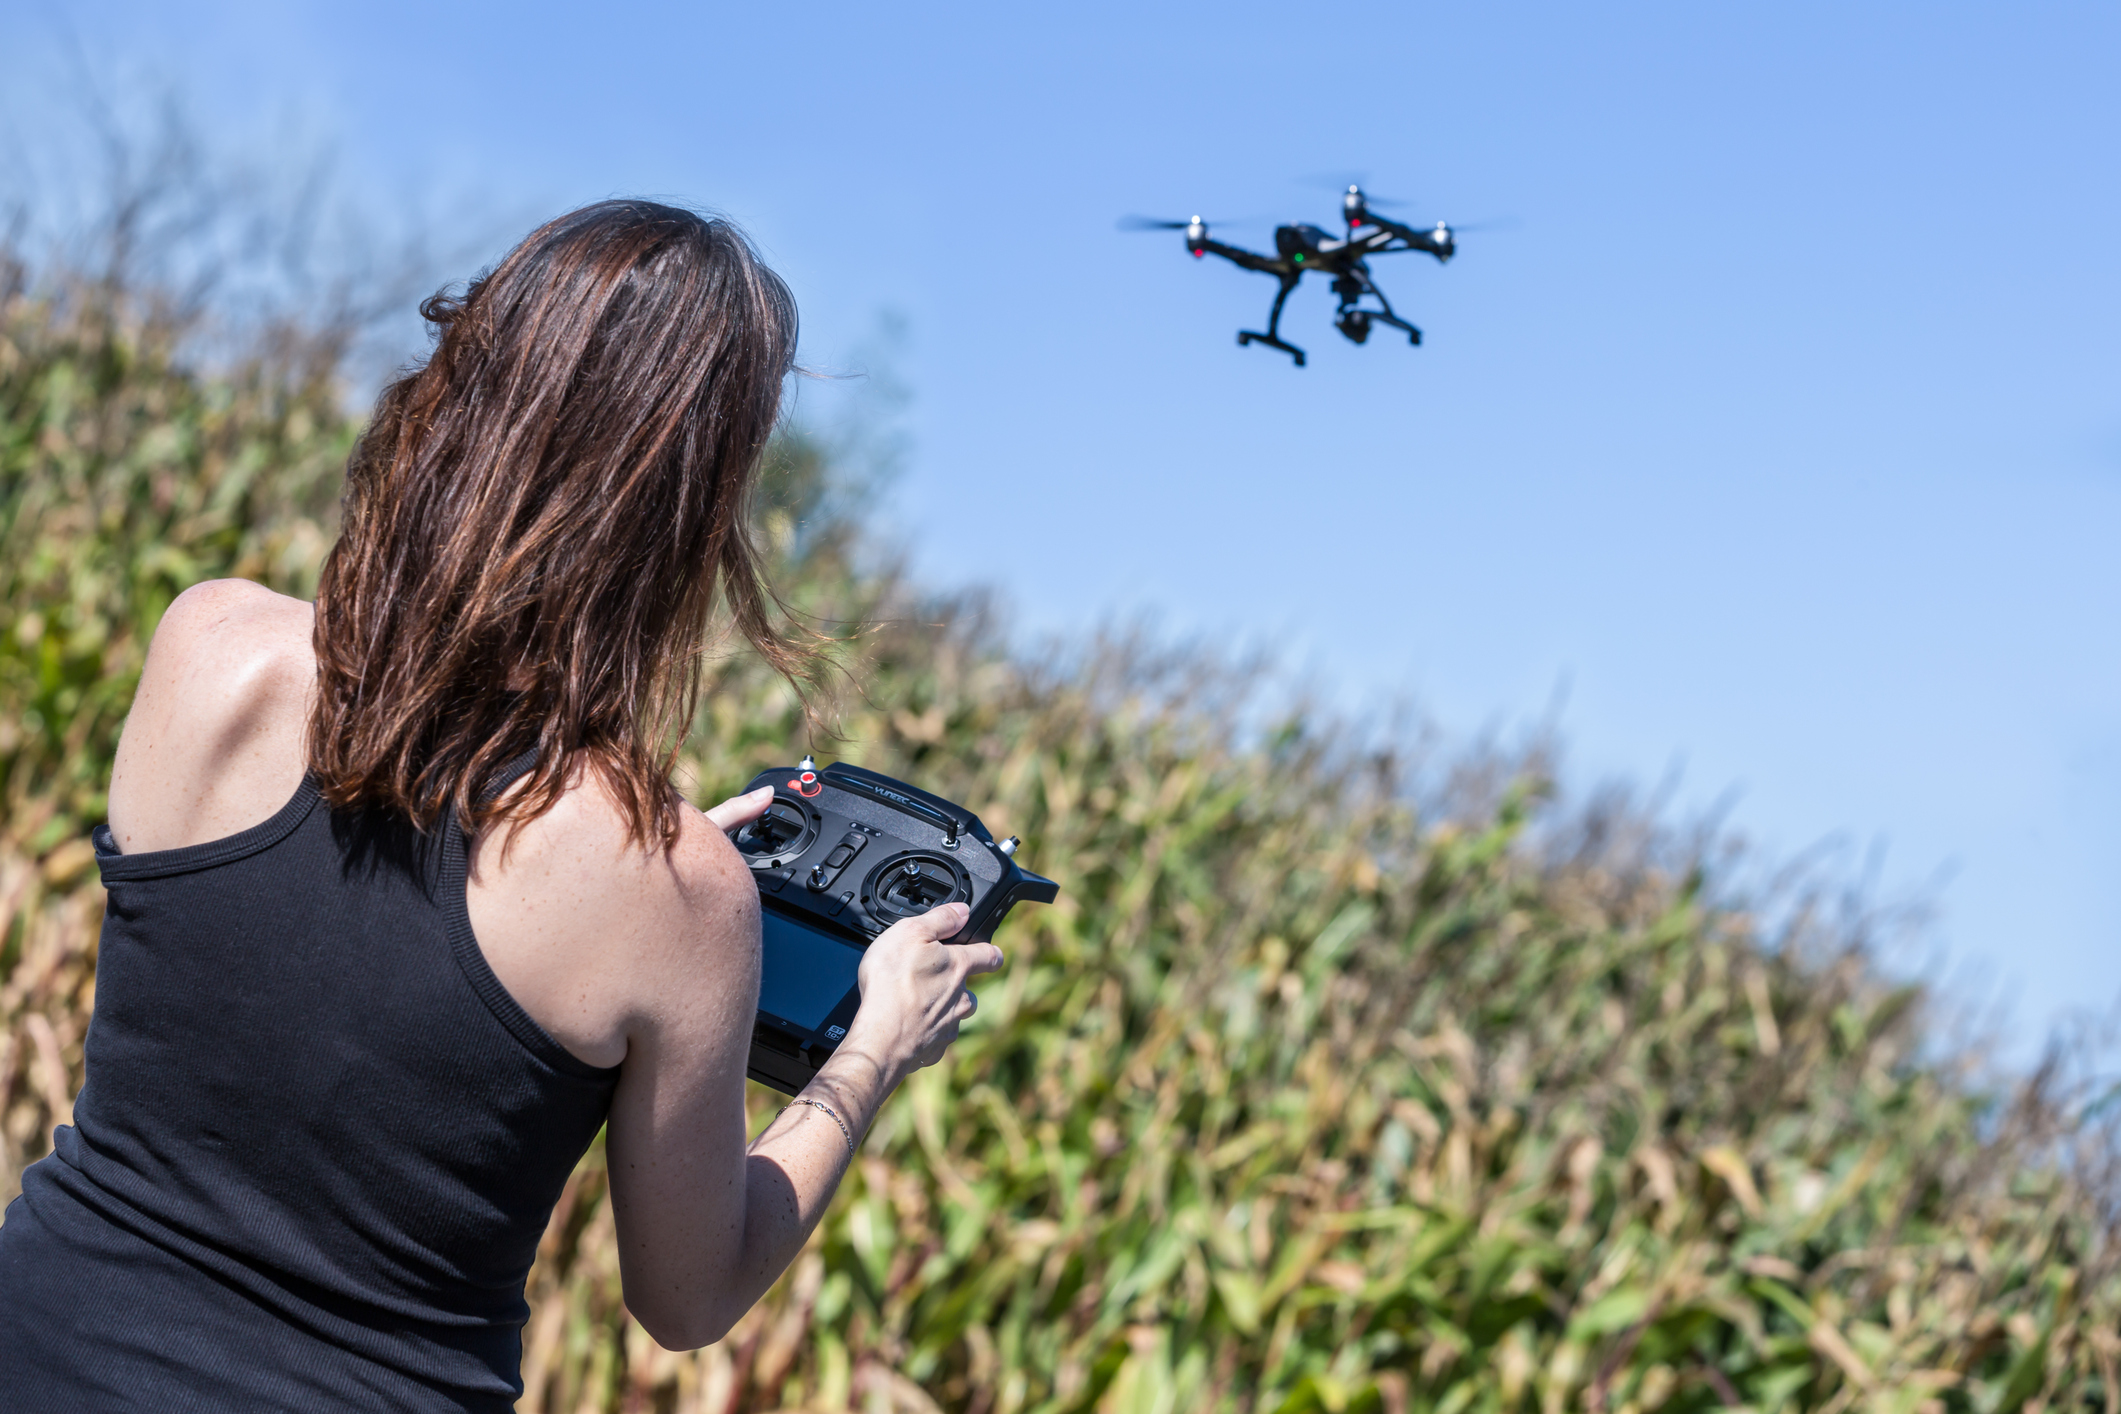 8% of Americans may own a drone, but here's how most people feel about them